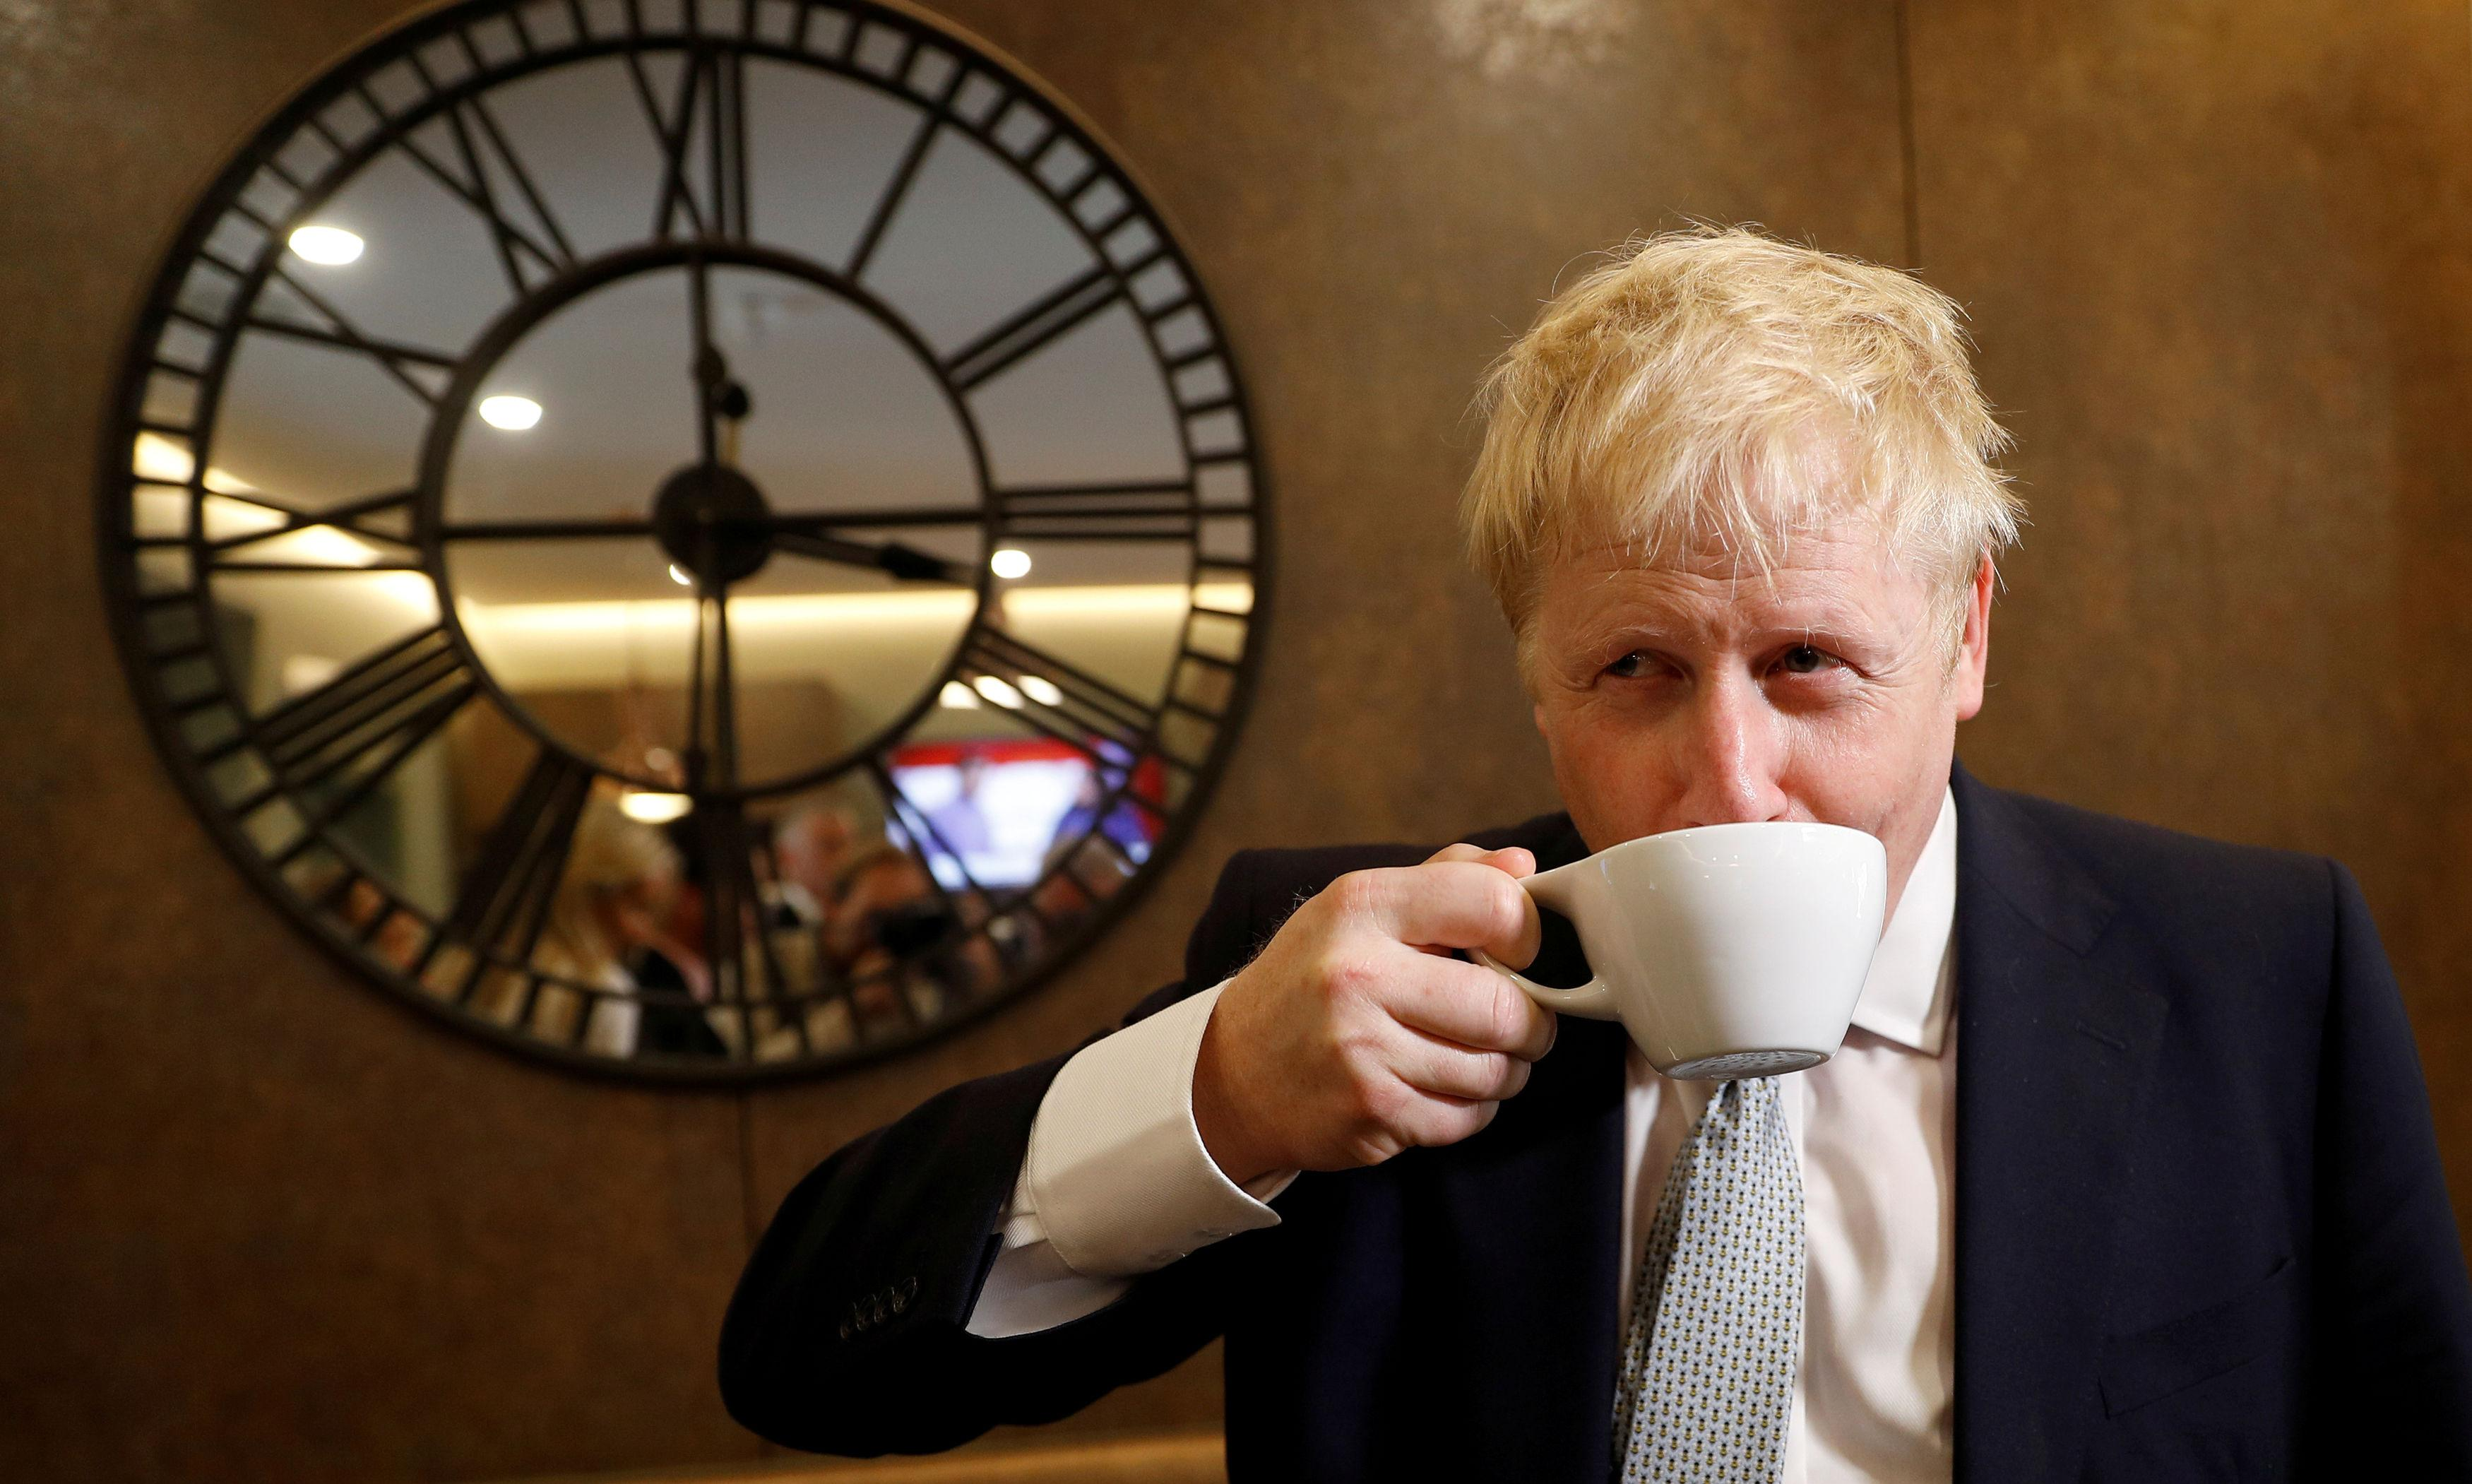 Boris Johnson is self-destructing. How much of Britain will he drag down too?